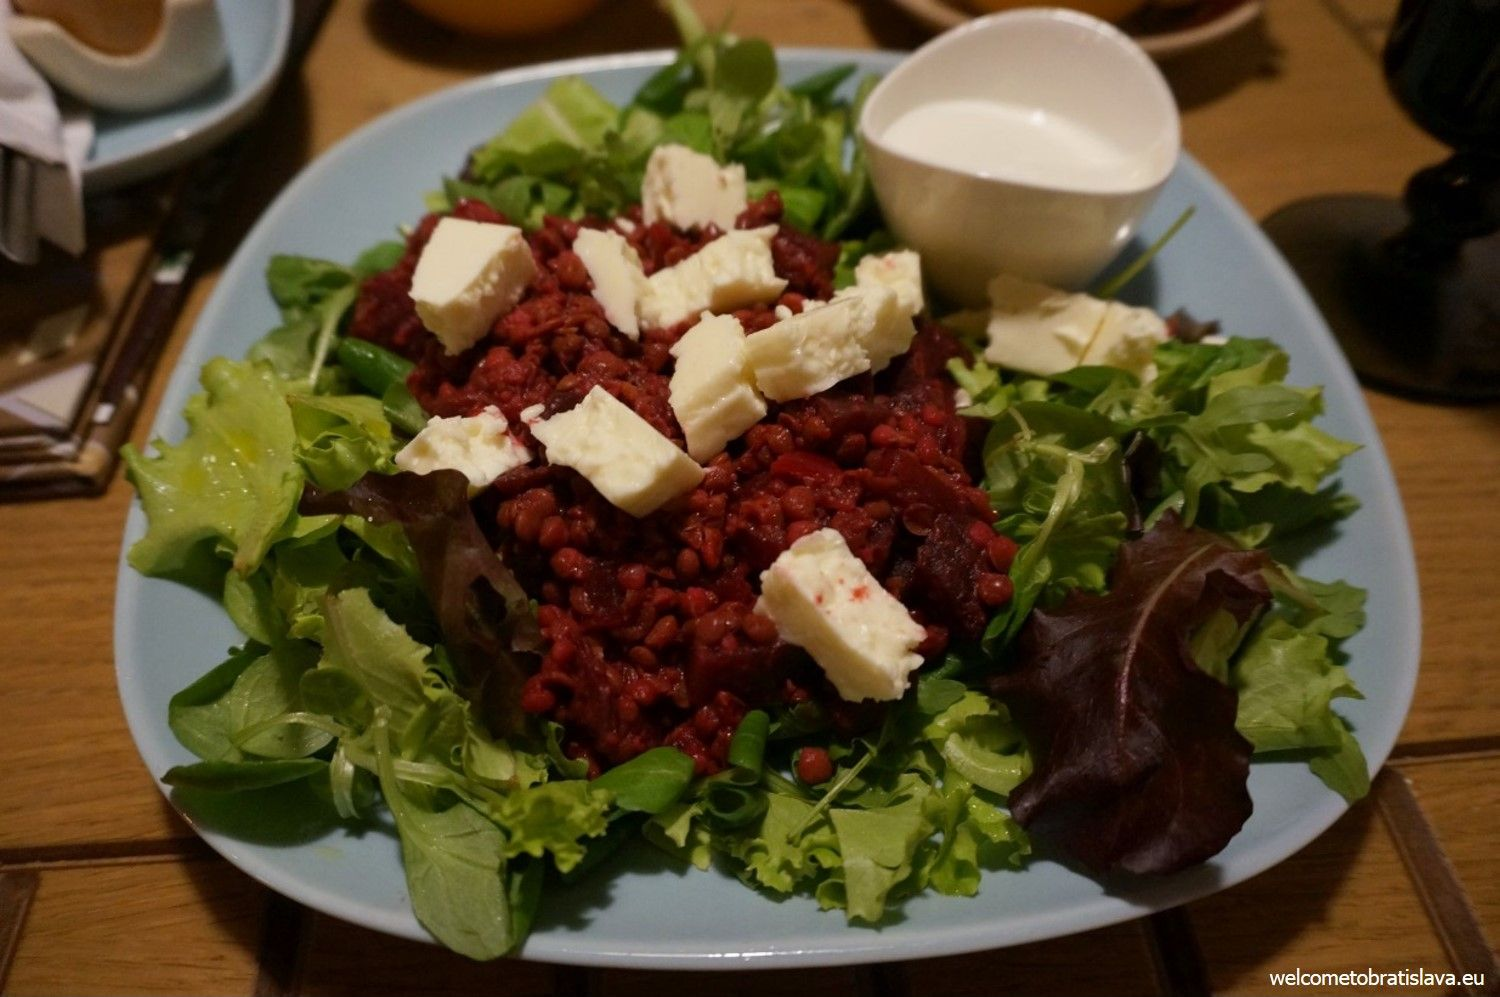 Warm lentil salad with beetroot and cheese